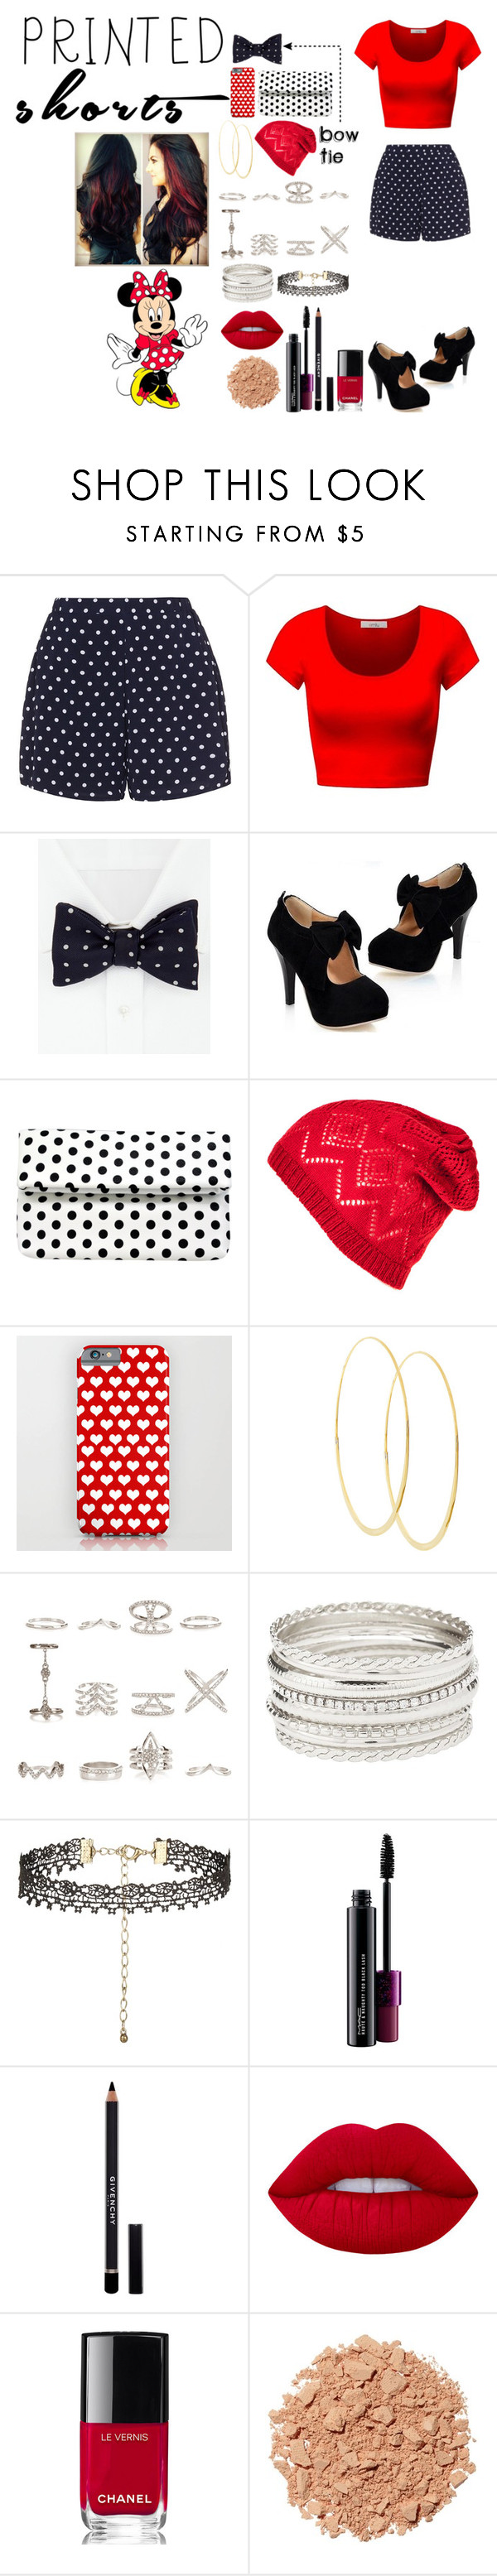 """""""Recreation of Minnie Mouse"""" by creative-with-fashion ❤ liked on Polyvore featuring Zizzi, Turnbull & Asser, La Regale, Lana, New Look, Charlotte Russe, MAC Cosmetics, Givenchy, Lime Crime and Chanel"""